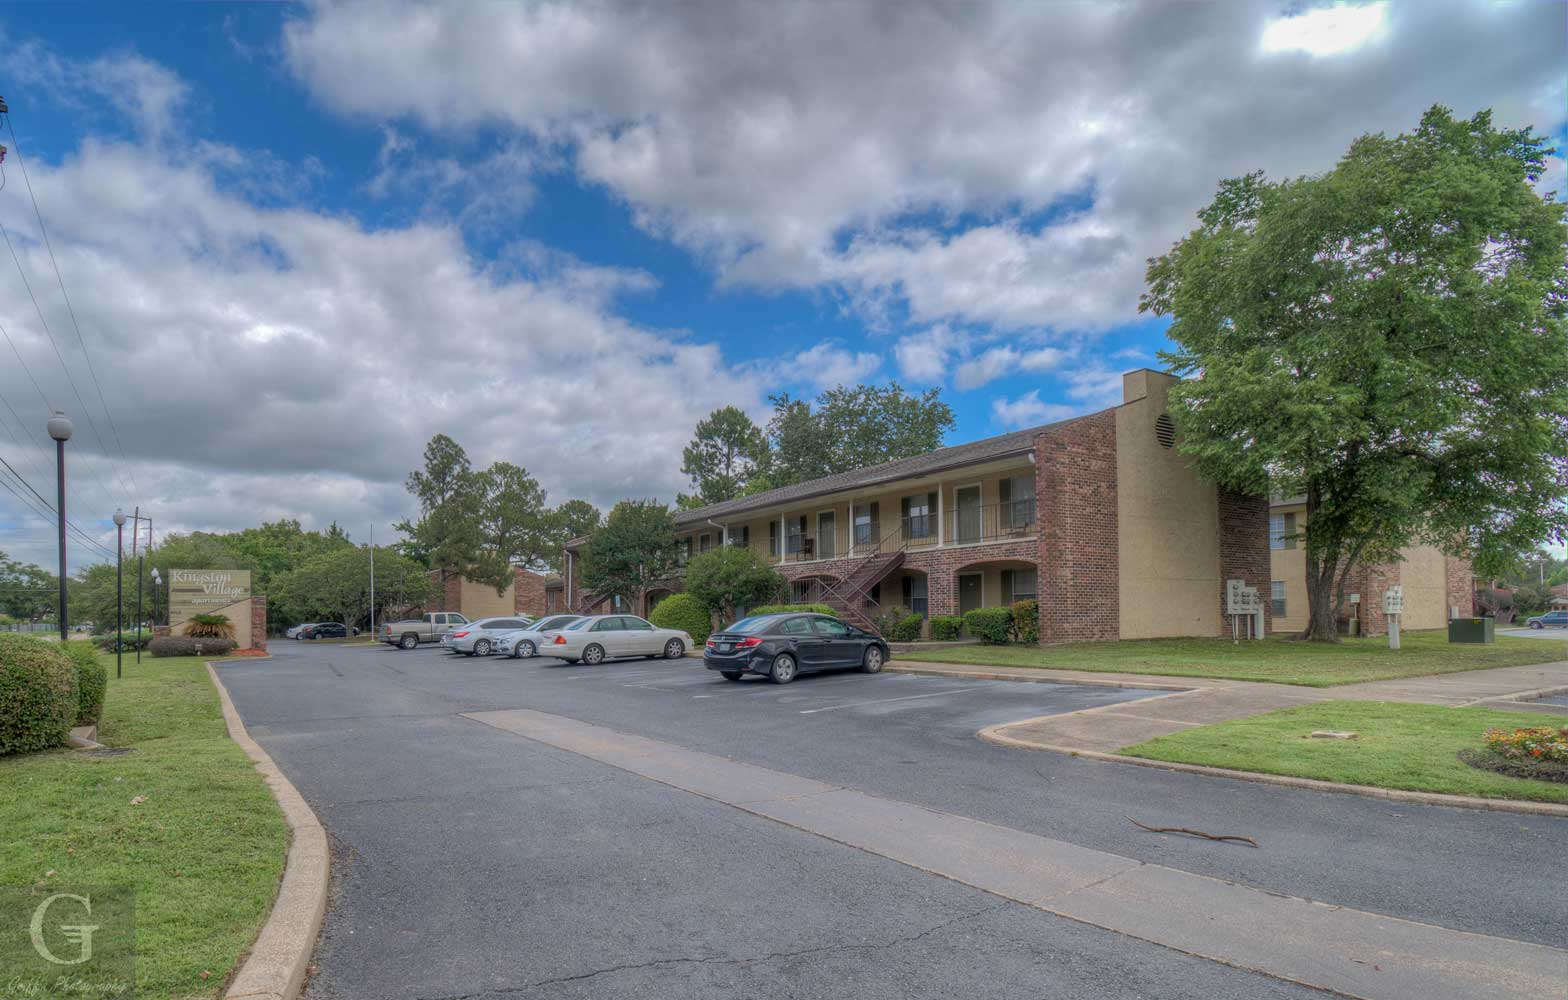 Apartments for Lease at Kingston Village Apartments in Shreveport, LA